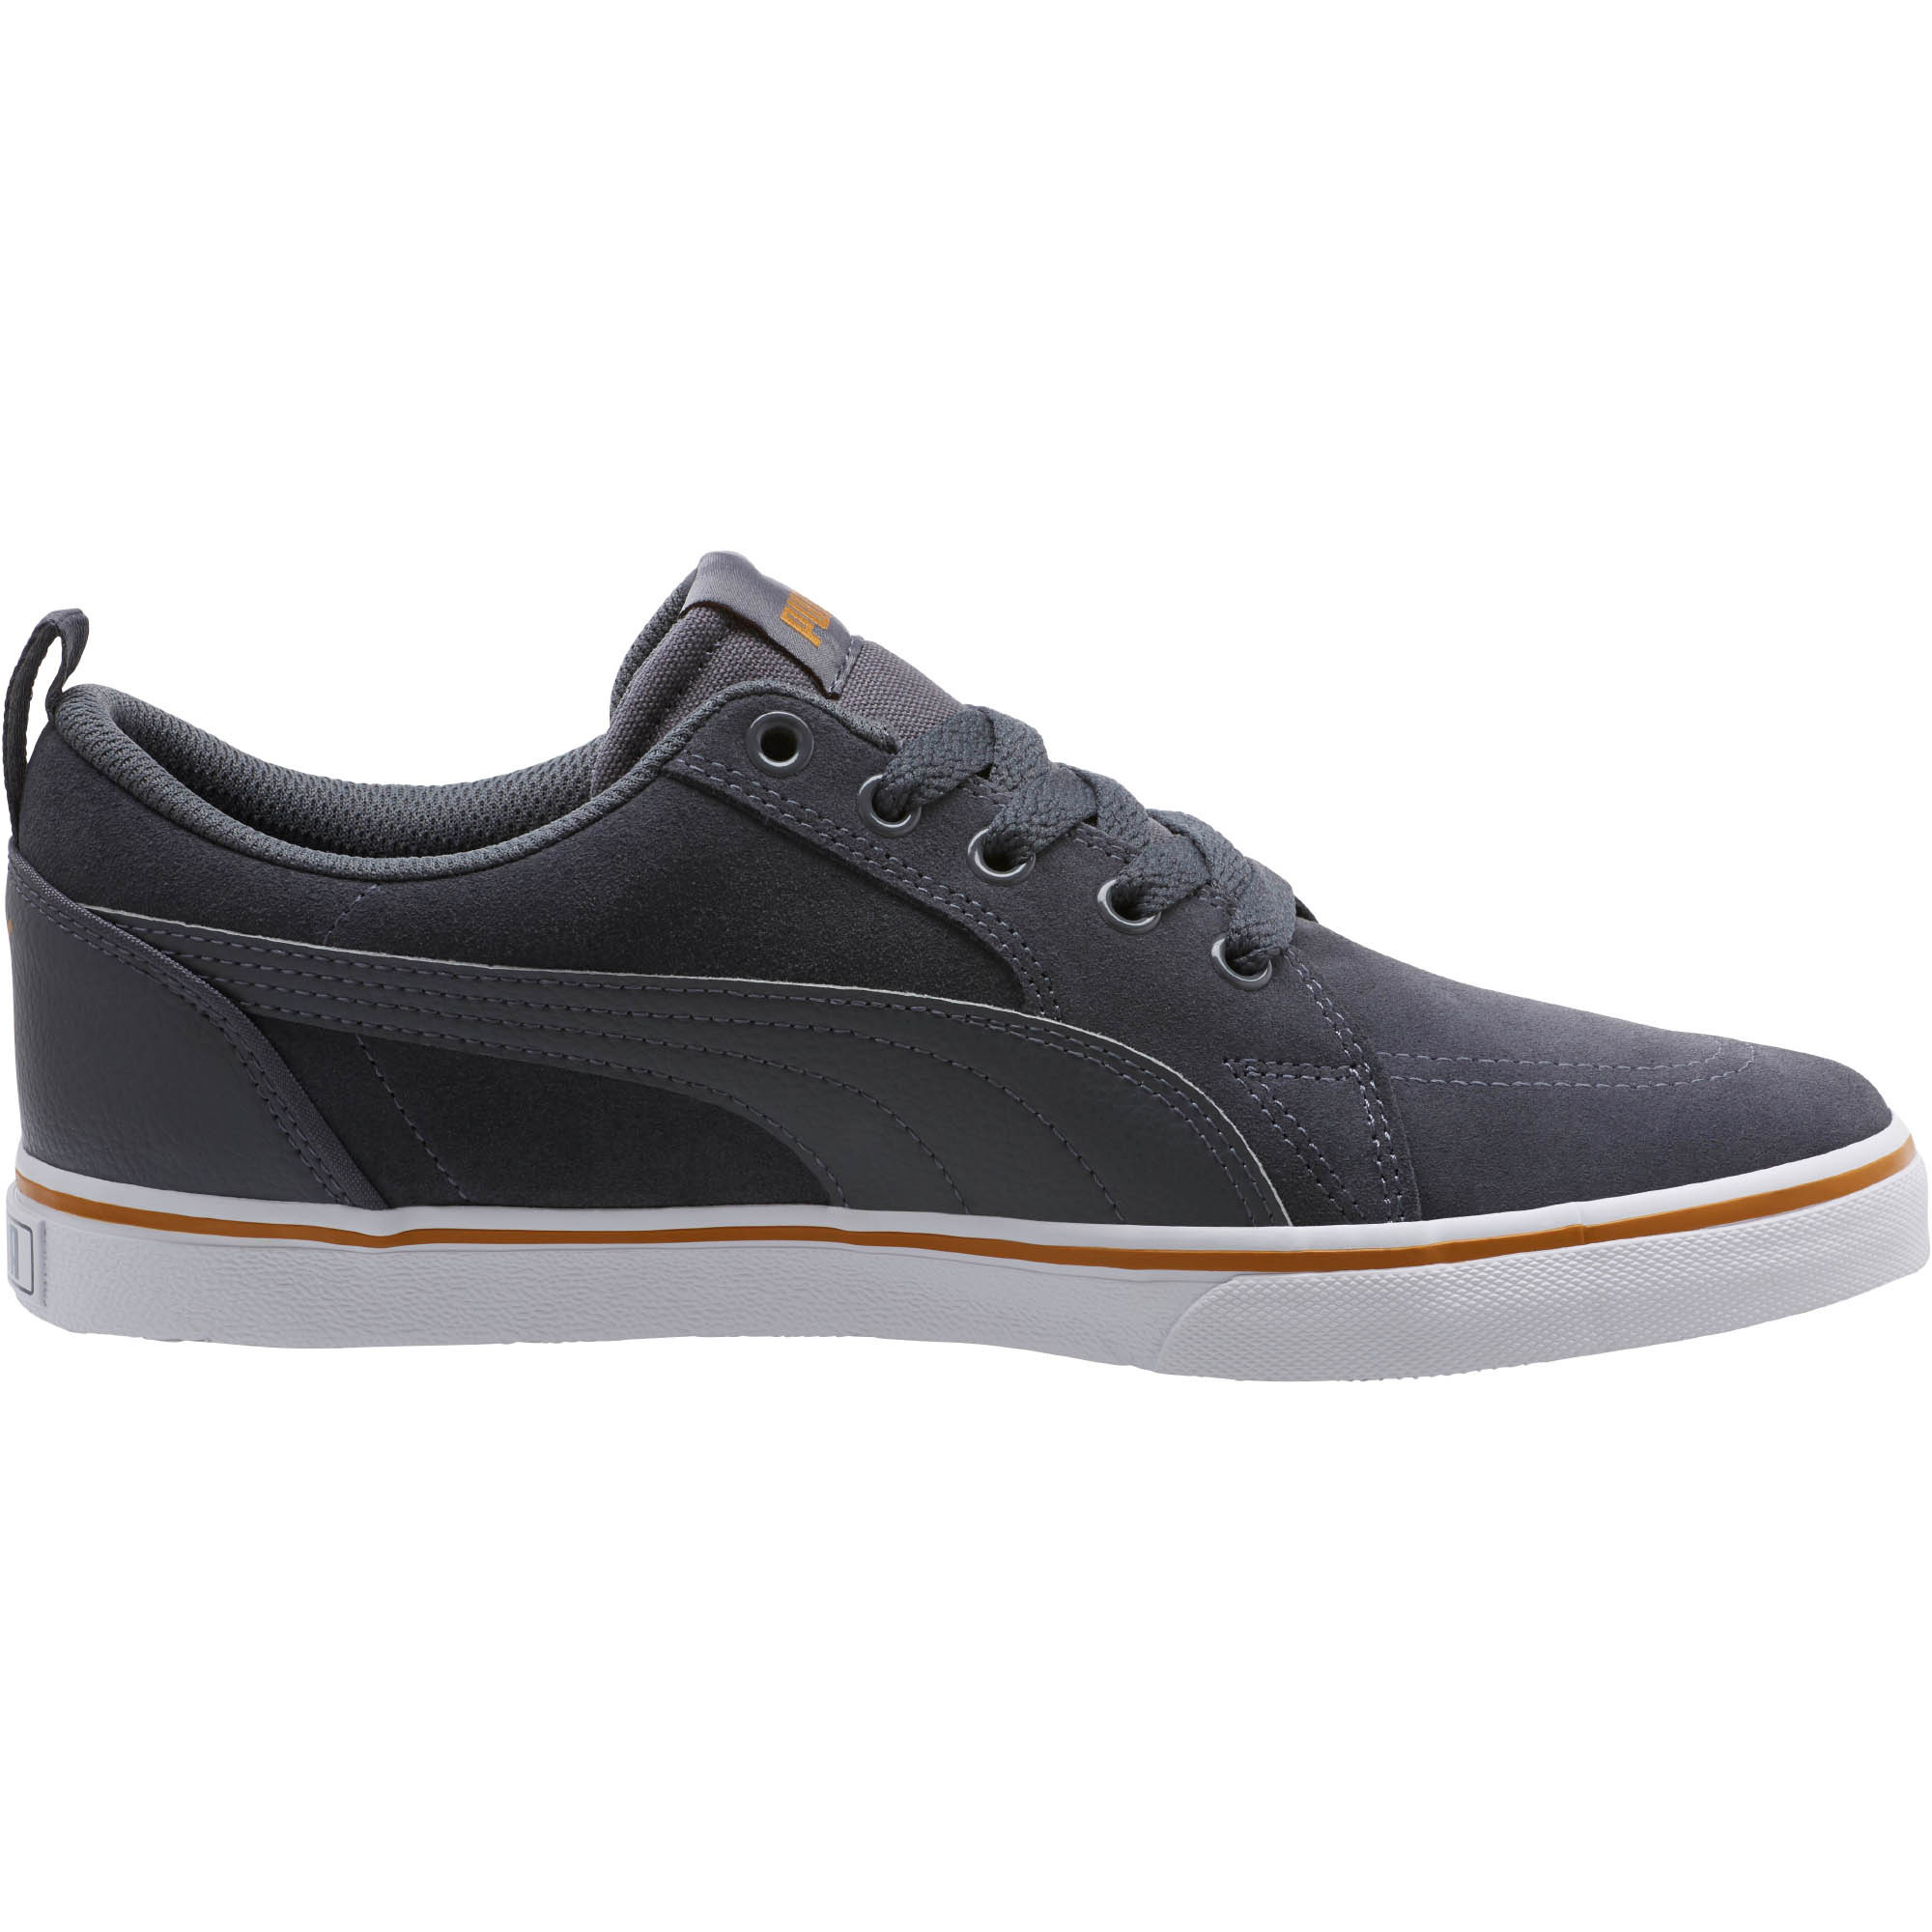 PUMA-Puma-Bridger-SD-Men-039-s-Sneakers-Men-Shoe-Basics thumbnail 15